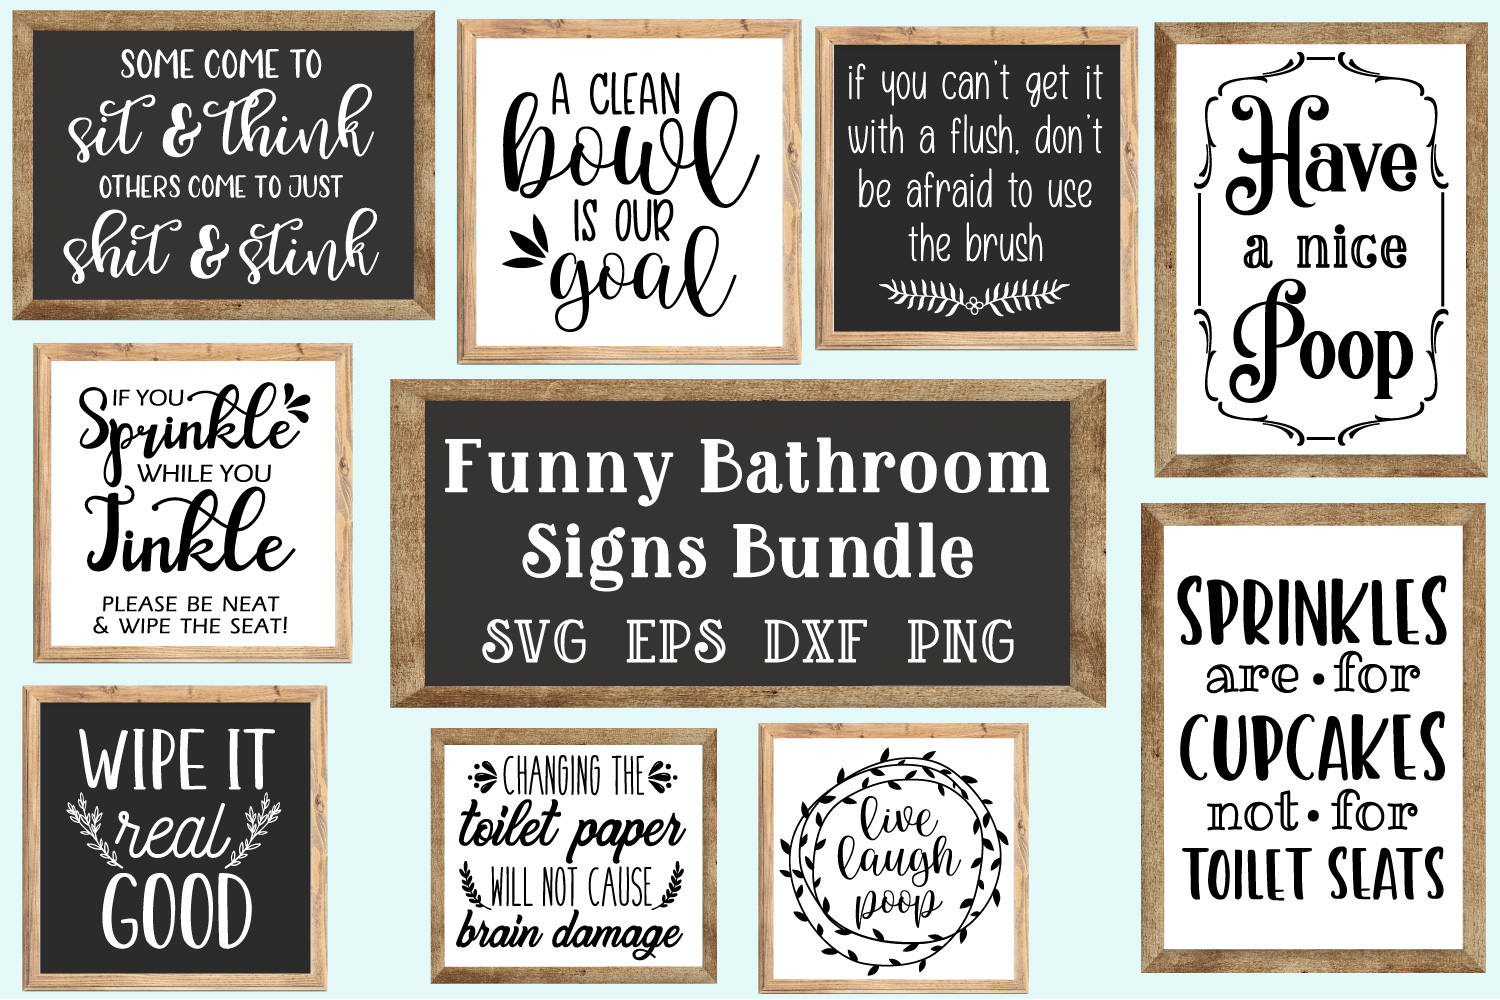 Bathroom Signs Bundle Svg Eps Dxf Png